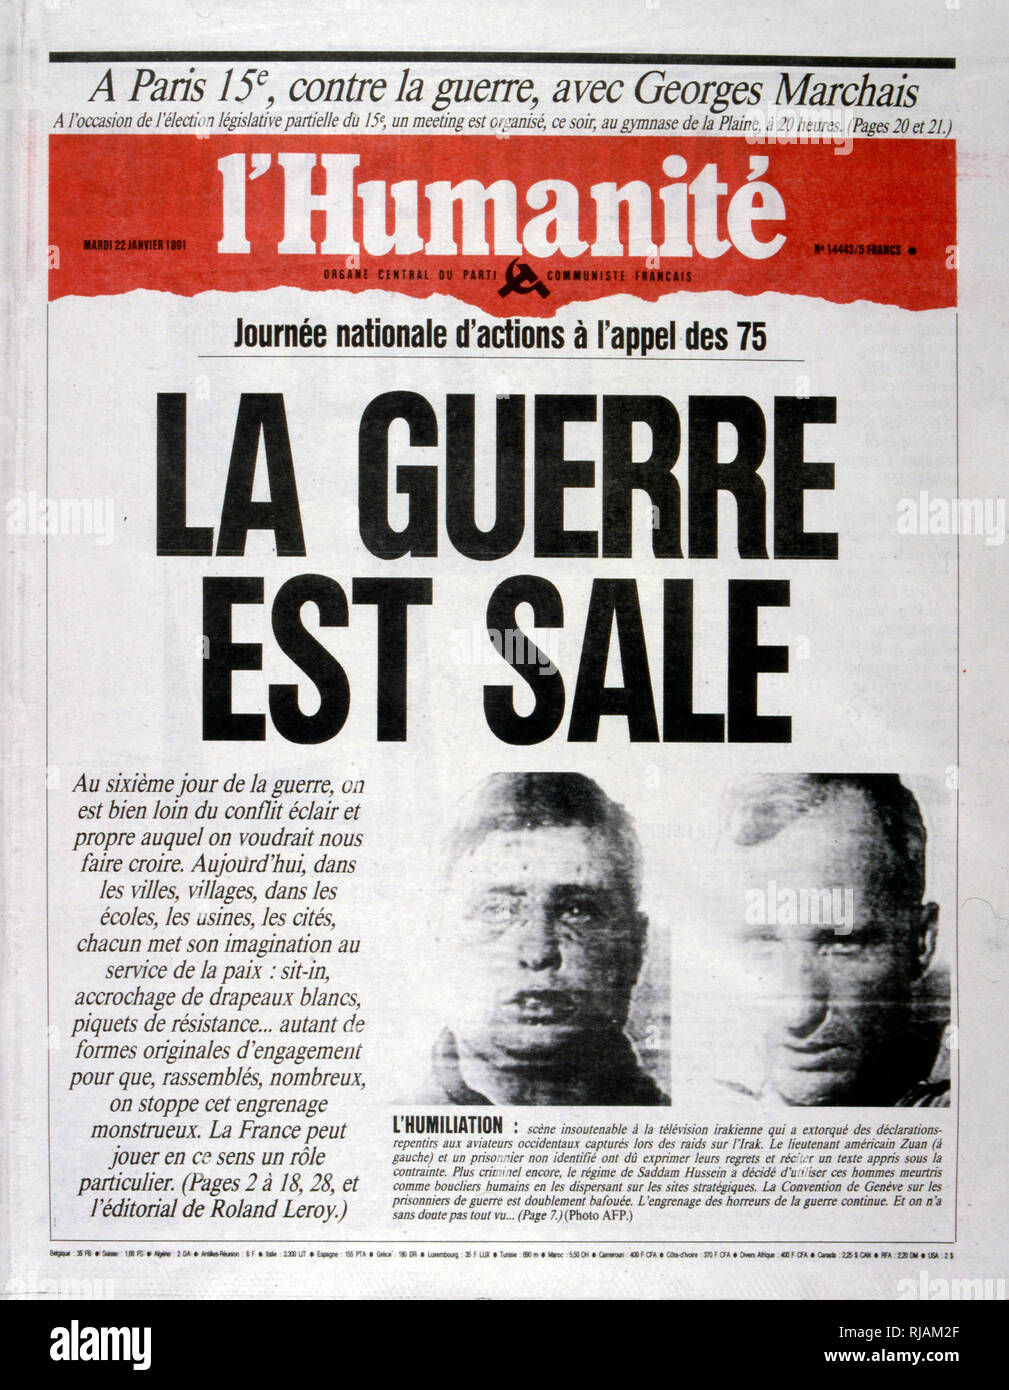 la guerre est sale (the dirty war), anti-war headline in 'l'Humanite' a French newspaper, 2nnd January 1991, concerning captured US pilots during the Gulf War (2 August 1990 - 28 February 1991). codenamed Operation Desert Shield and Operation Desert Storm, the war waged by coalition forces from 35 nations led by the United States against Iraq in response to Iraq's invasion and annexation of Kuwait. the pictures show French filed commanders and the French War cabinet under President Mitterrand. - Stock Image